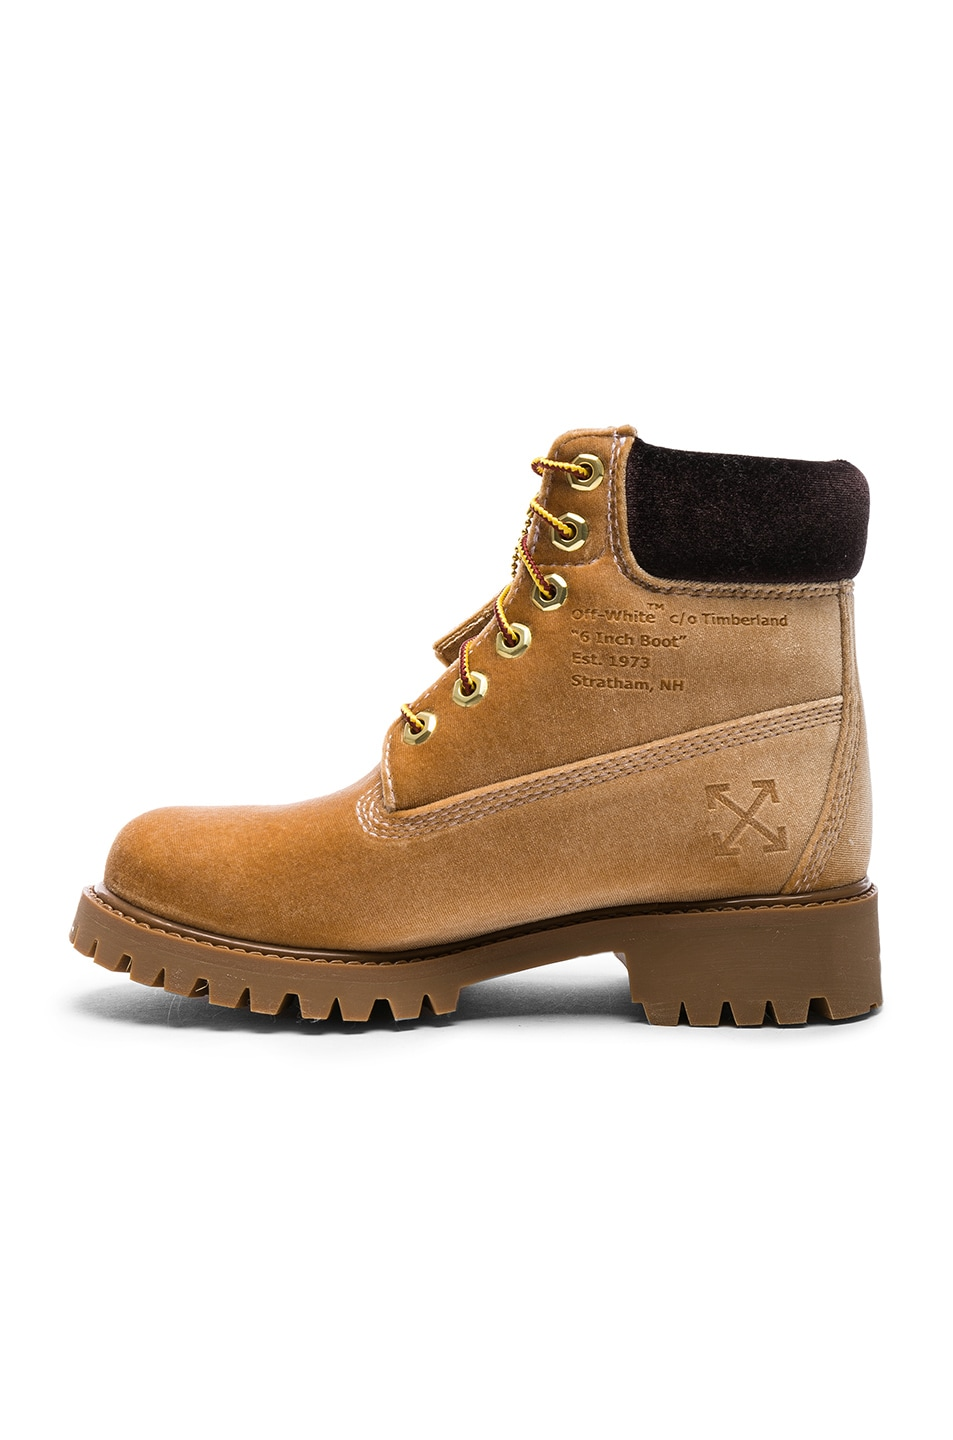 Image 5 of OFF-WHITE x Timberland Velvet Hiking Boots in Camel